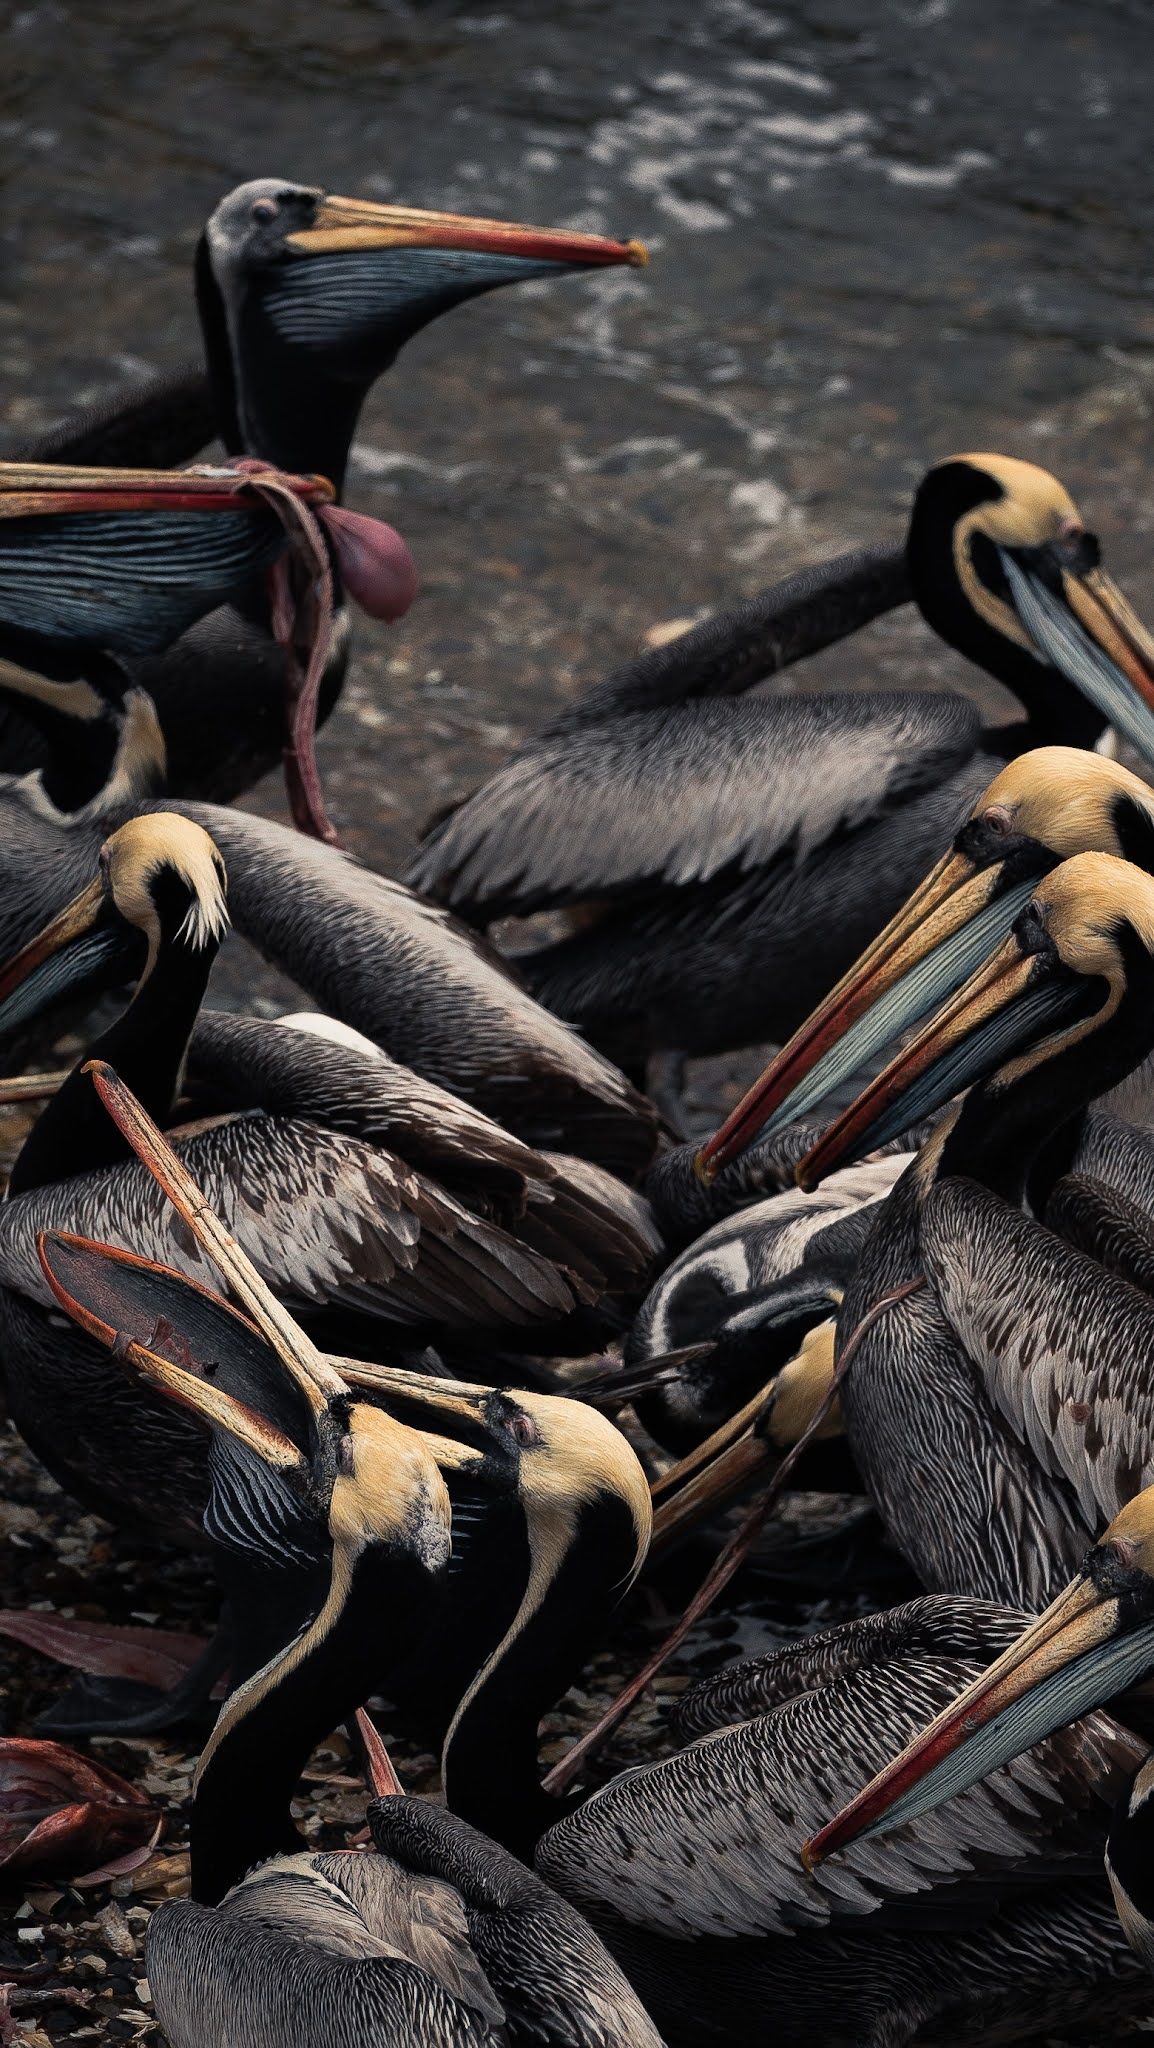 A group of pelicans.